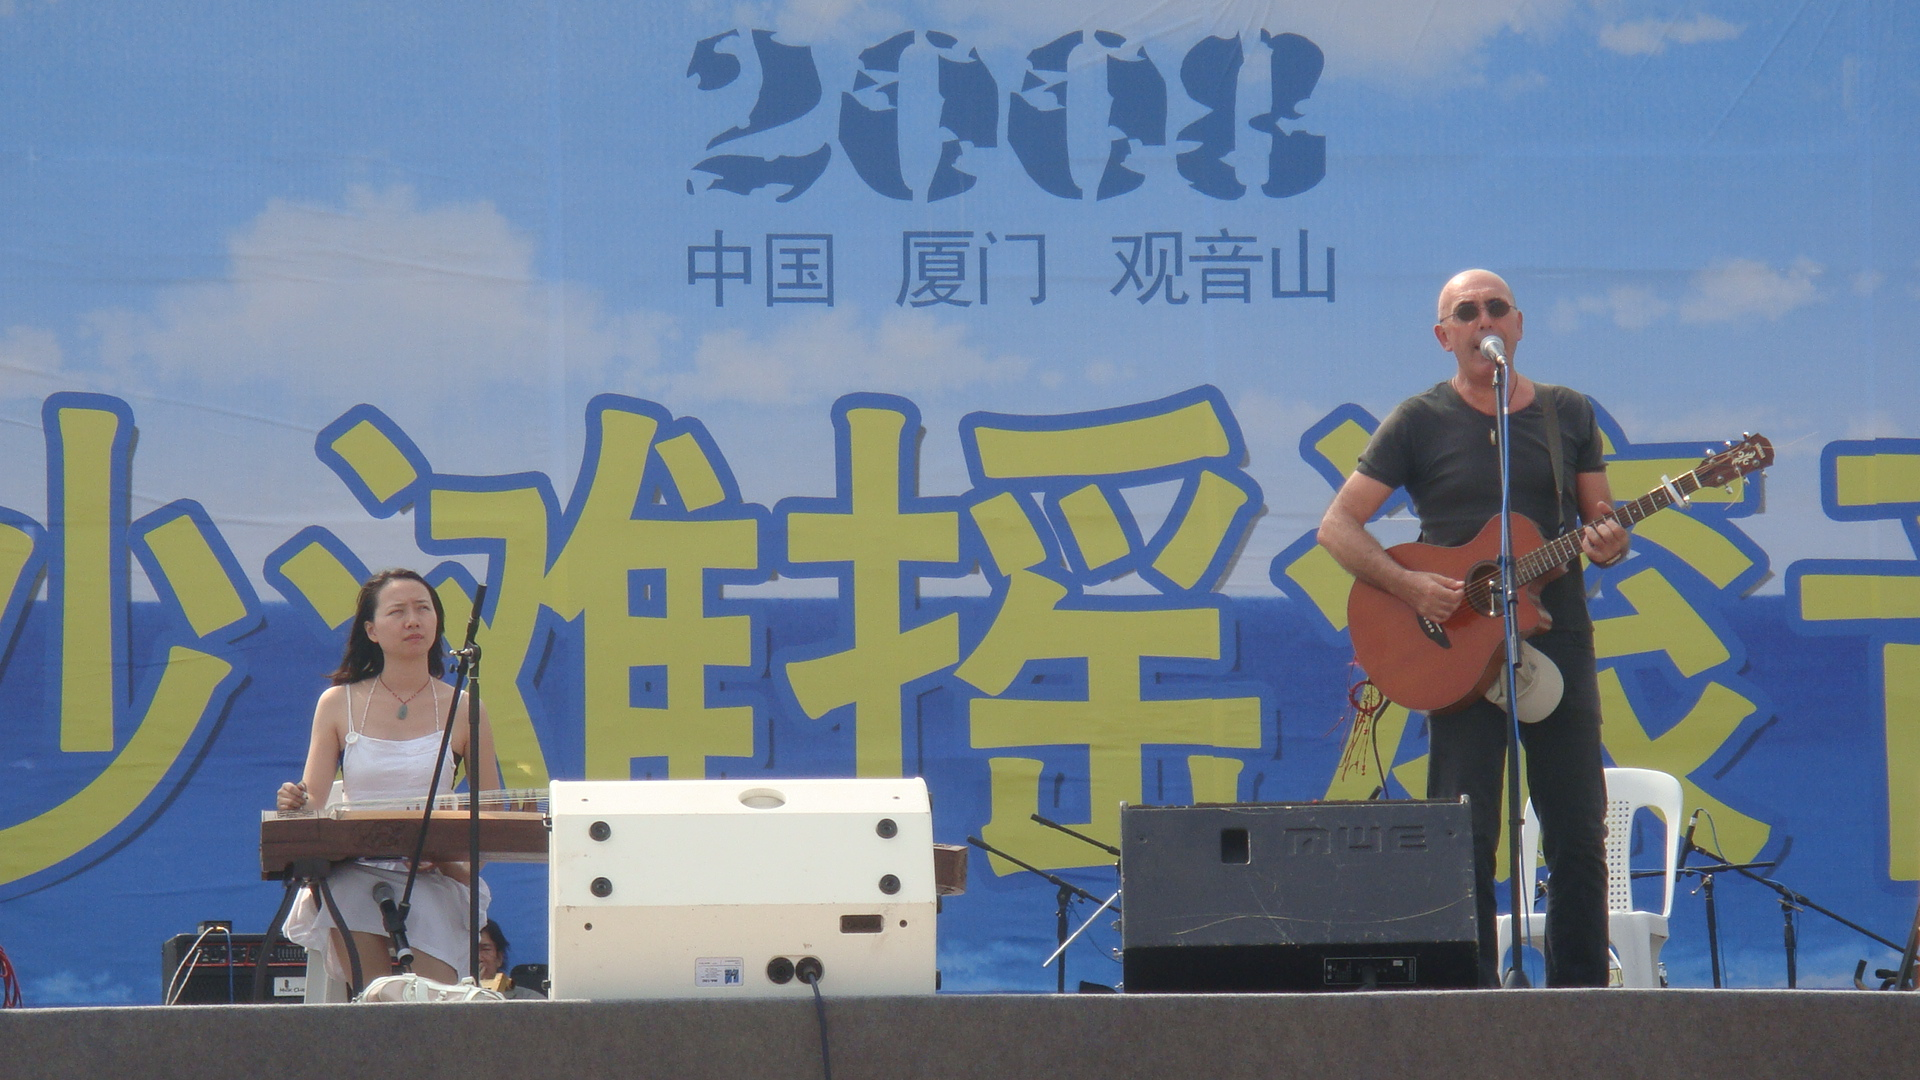 Beach Rock Music Festival with Long Qian